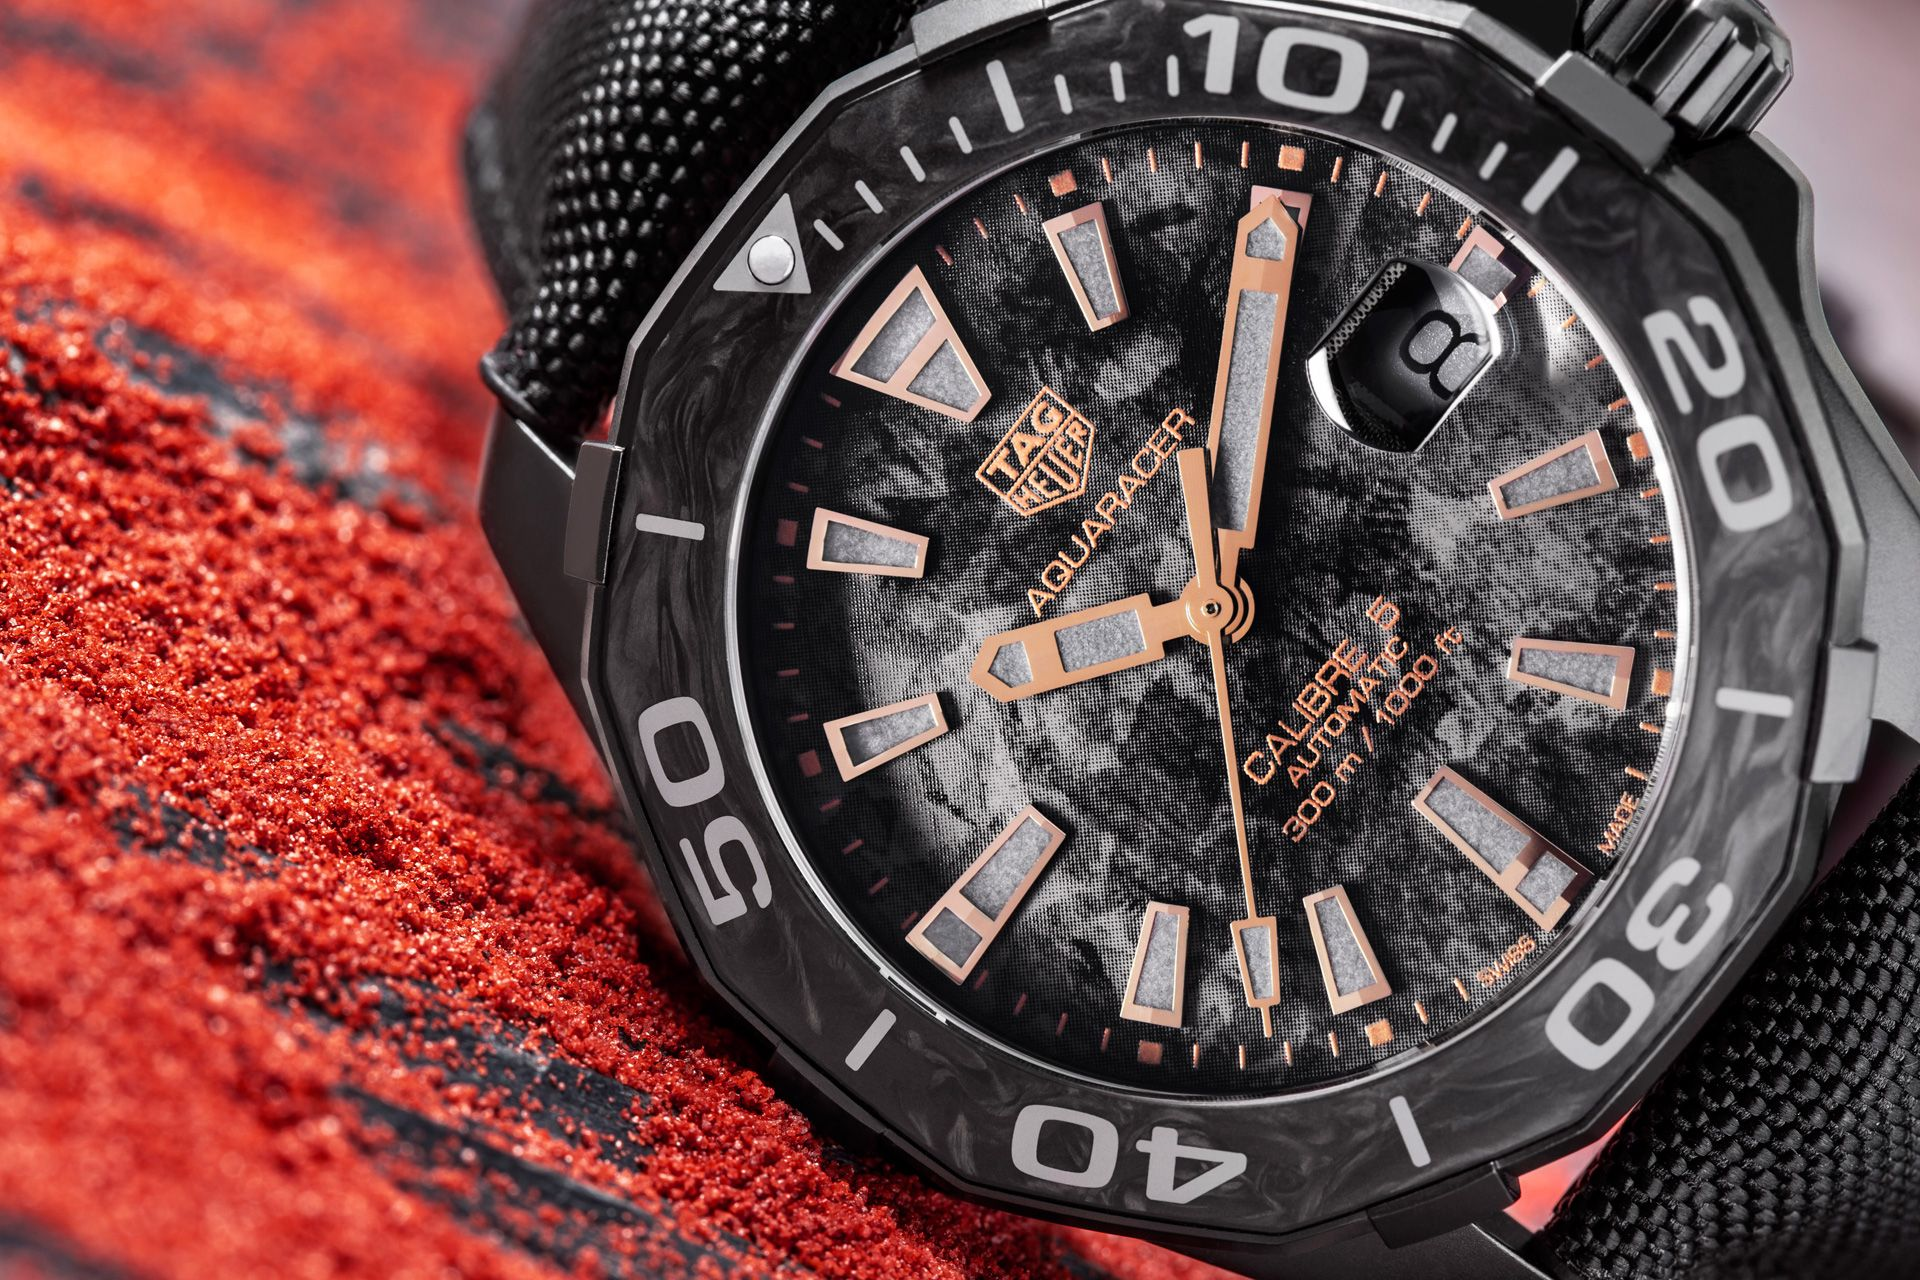 Serious Divers Will Want This Extra Durable Dive Watch